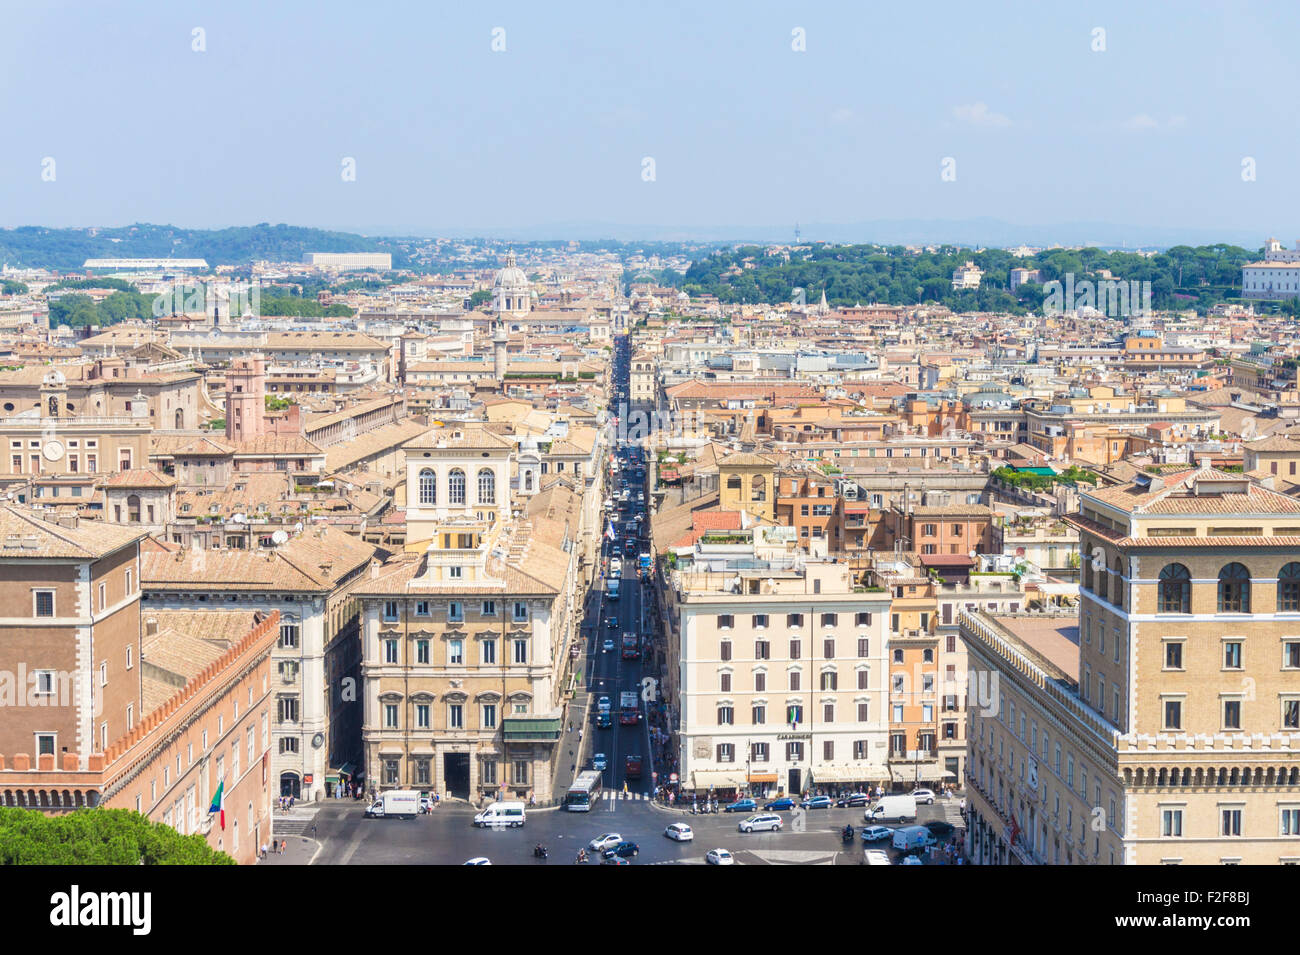 View of the rome skyline from rooftop of the Victor Emanuel II monument Piazza Venezia Rome Roma Lazio Italy EU - Stock Image